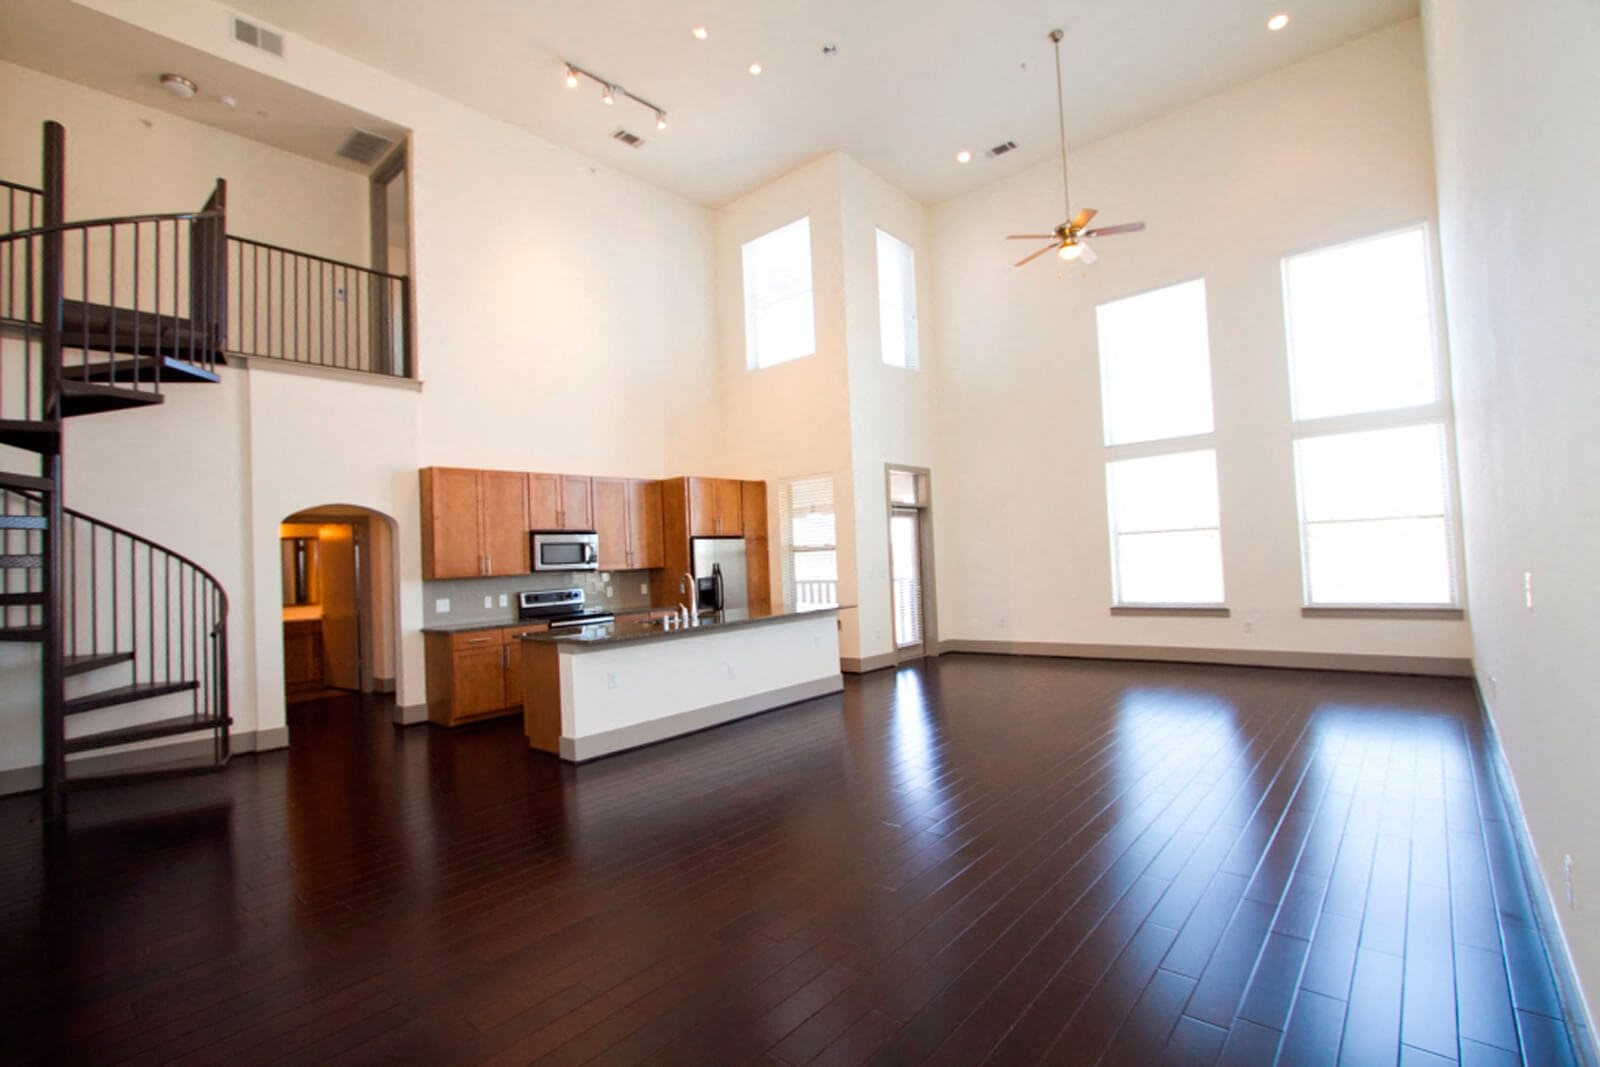 Dramatic 9' Ceilings at The Monterey by Windsor, Texas, 75204